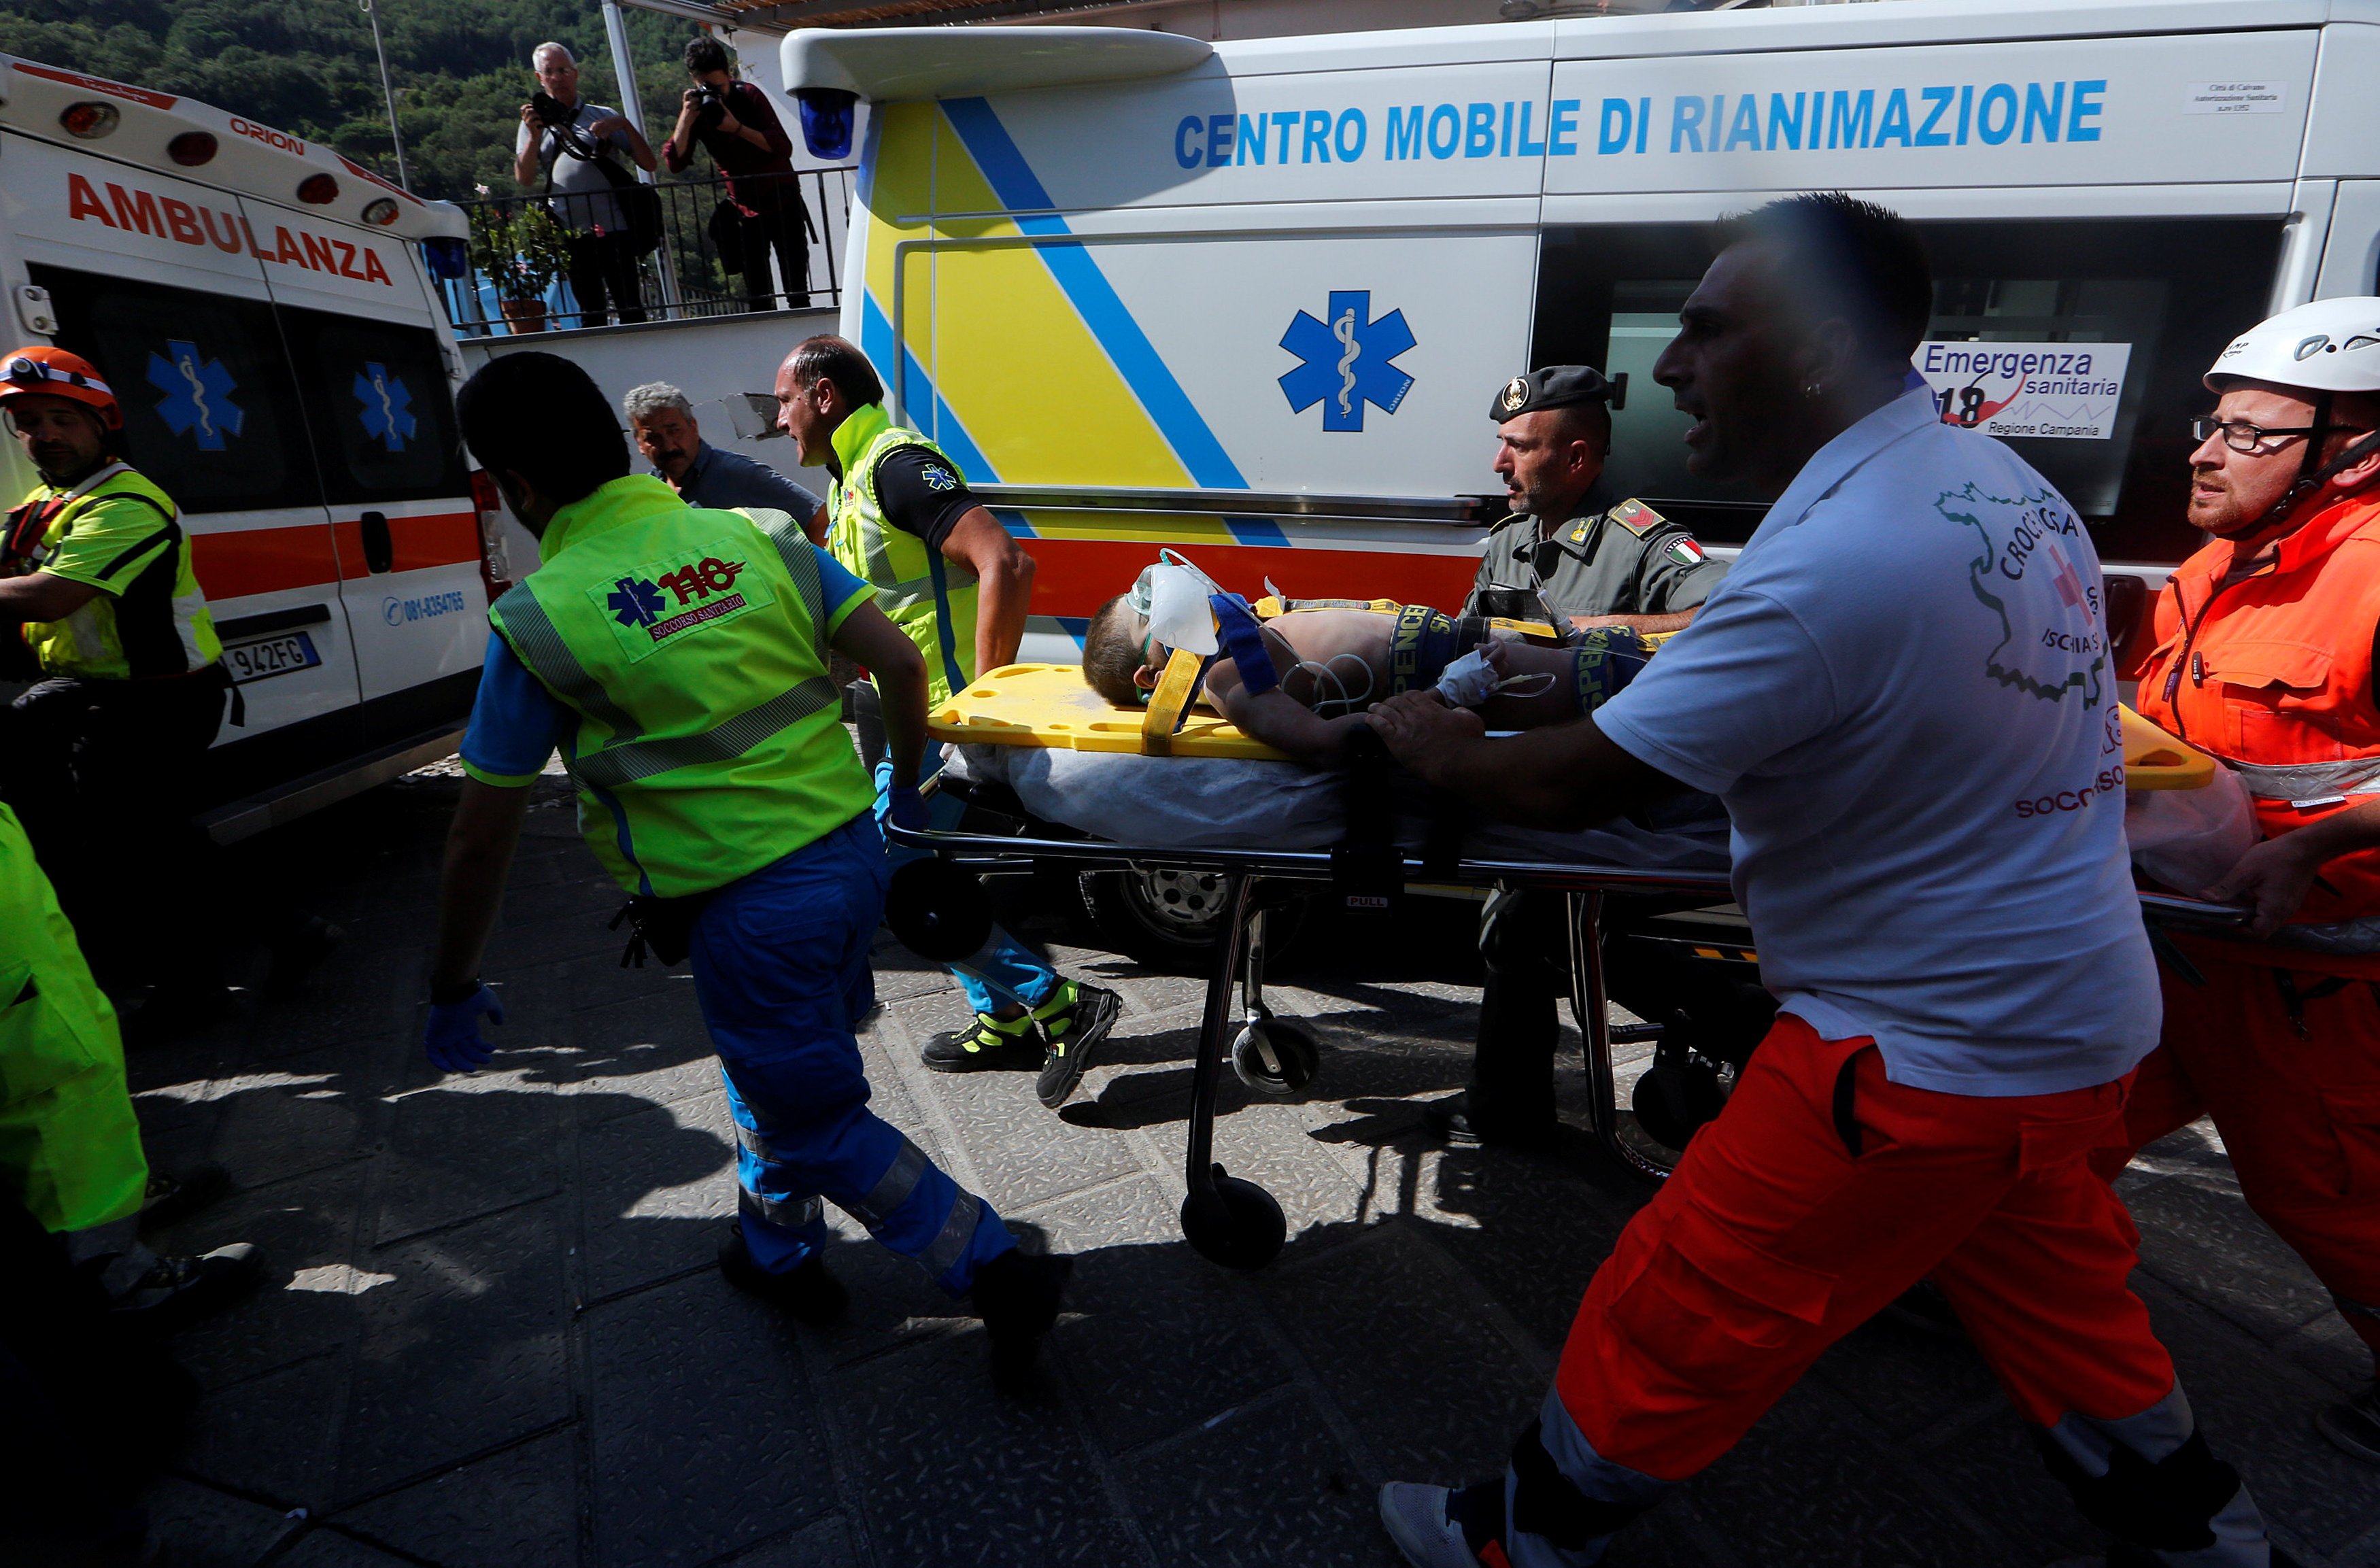 Rescue workers carry a child after an earthquake hit the island of Ischia, in Naples, Italy on August 22, 2017. (REUTERS/Ciro De Luca)